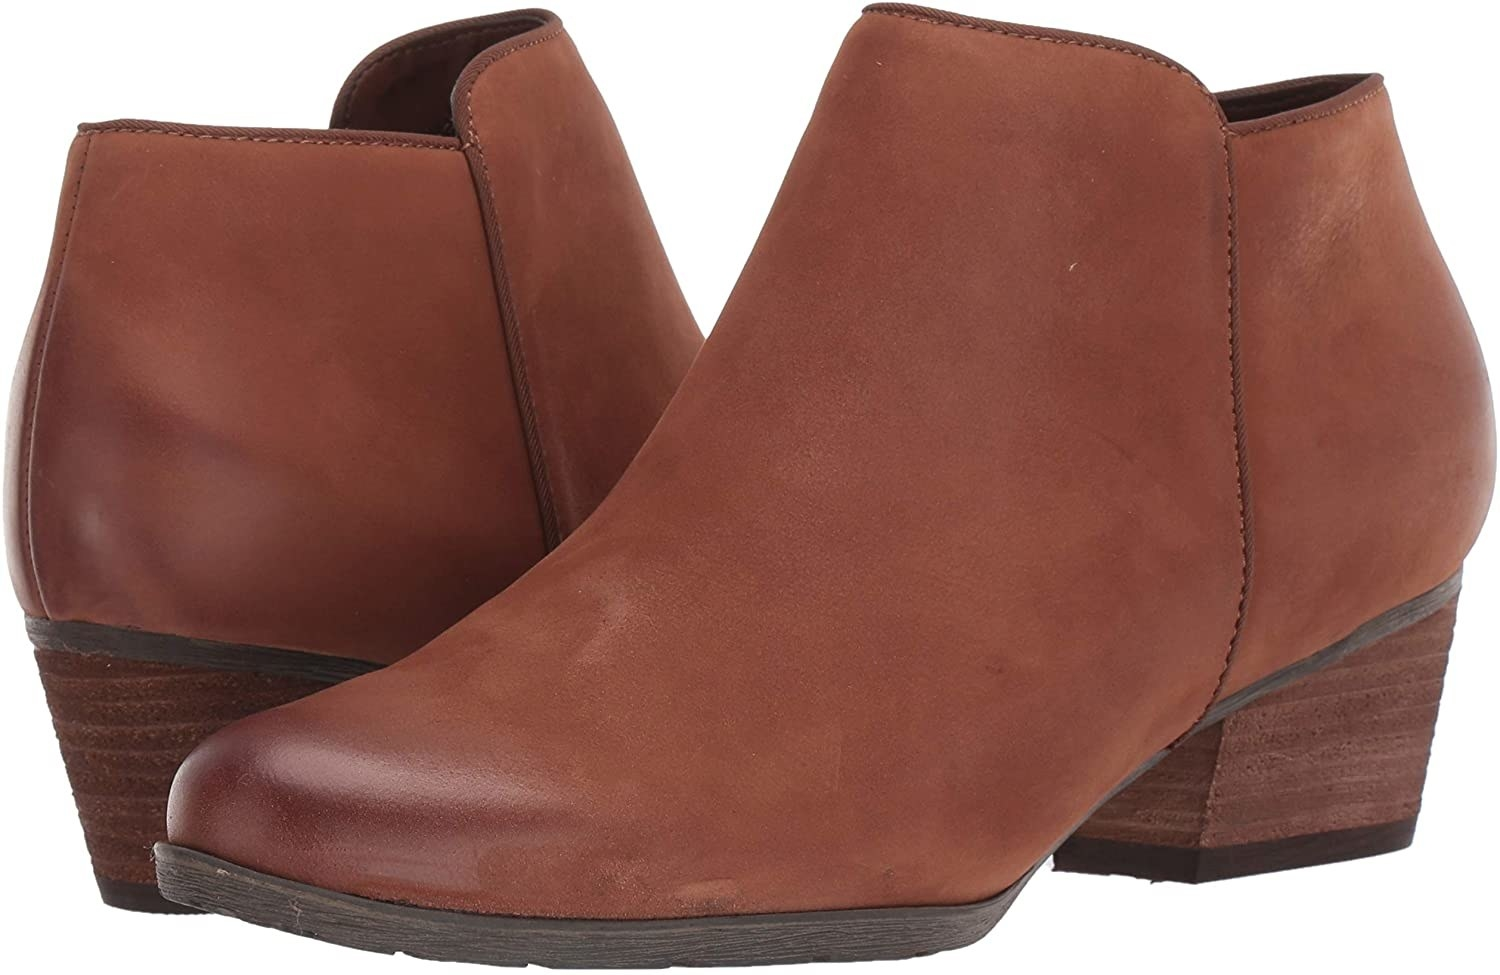 Ankle boots in cognac with stacked heel